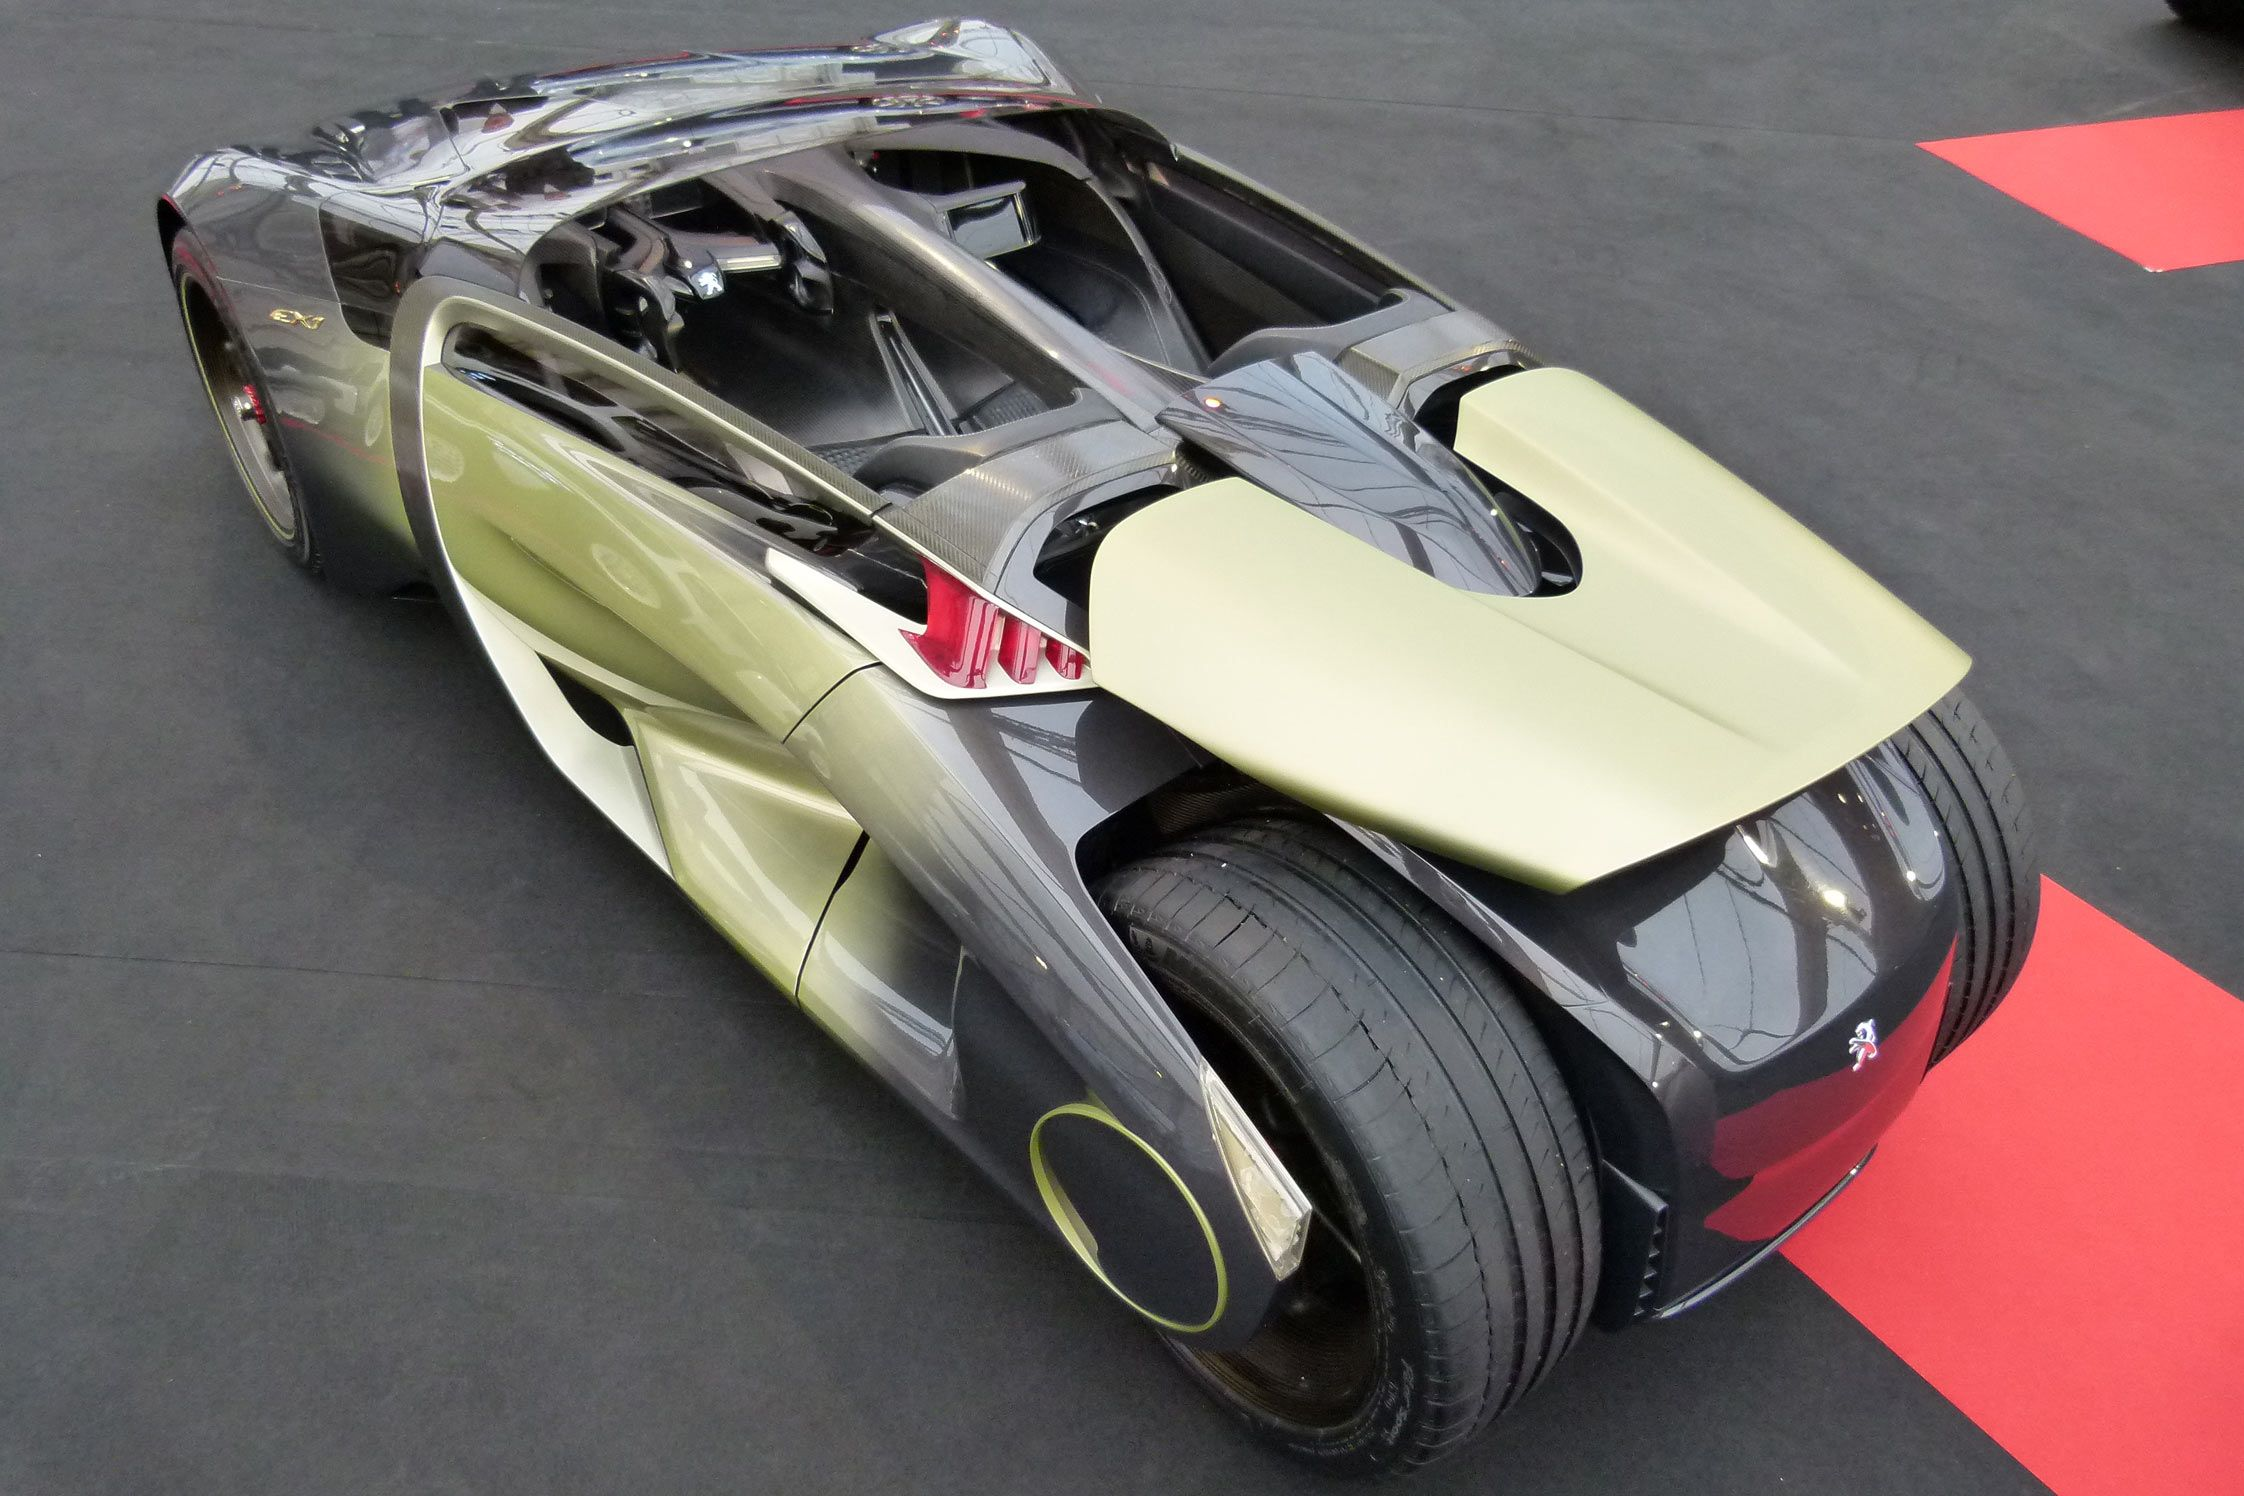 Peugeot Ex1 I Want Pinterest Cars And Concept The Bmw I1 Is An Electric Singleseater Trikecar By Designer Trucks Car Vehicle Super